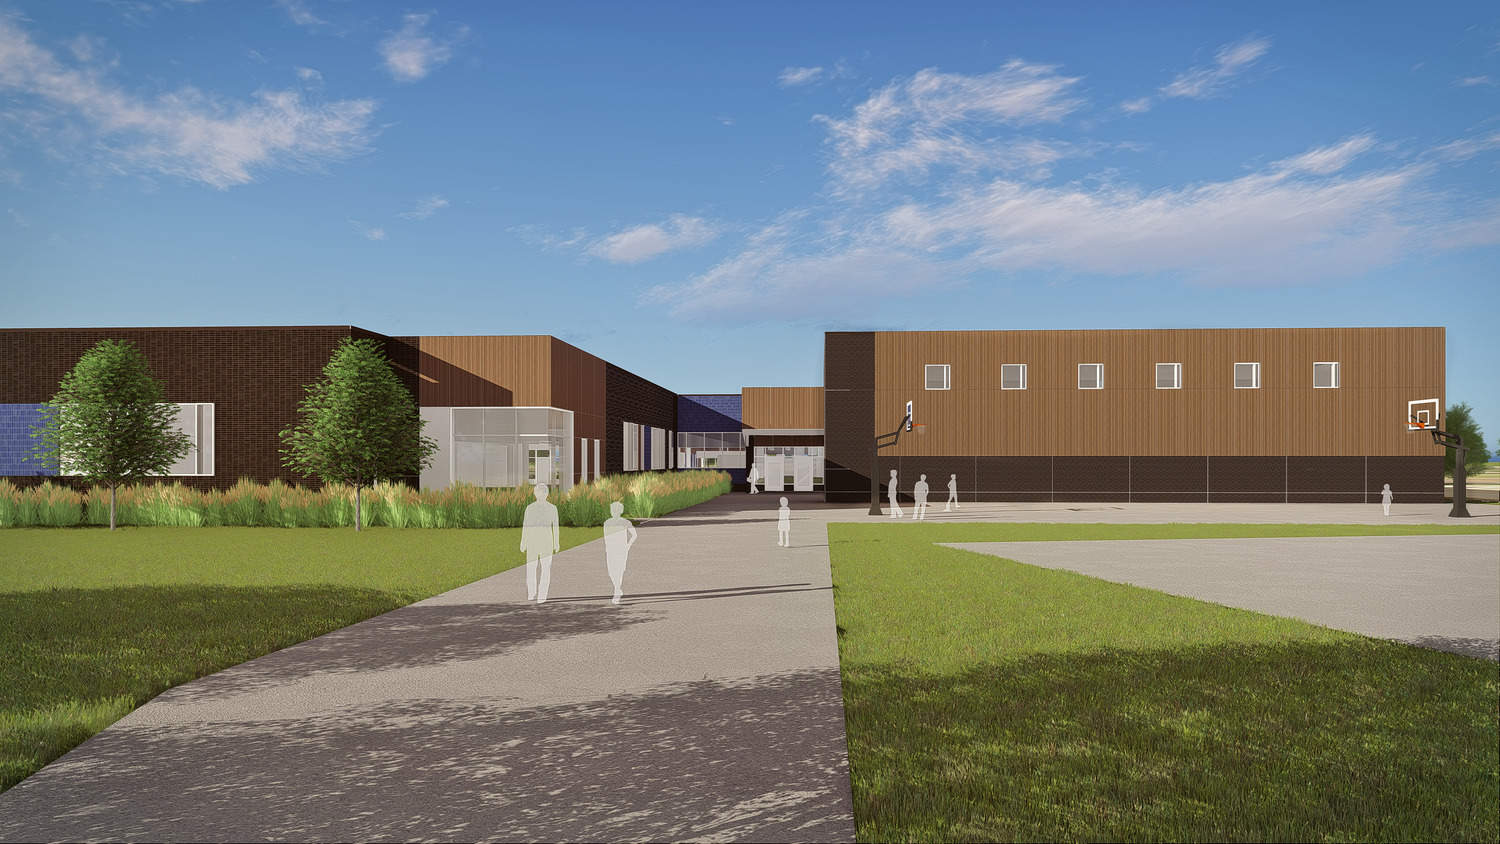 Saint Paul Public Schools RiverEast K-8 Special Education Center Relocation